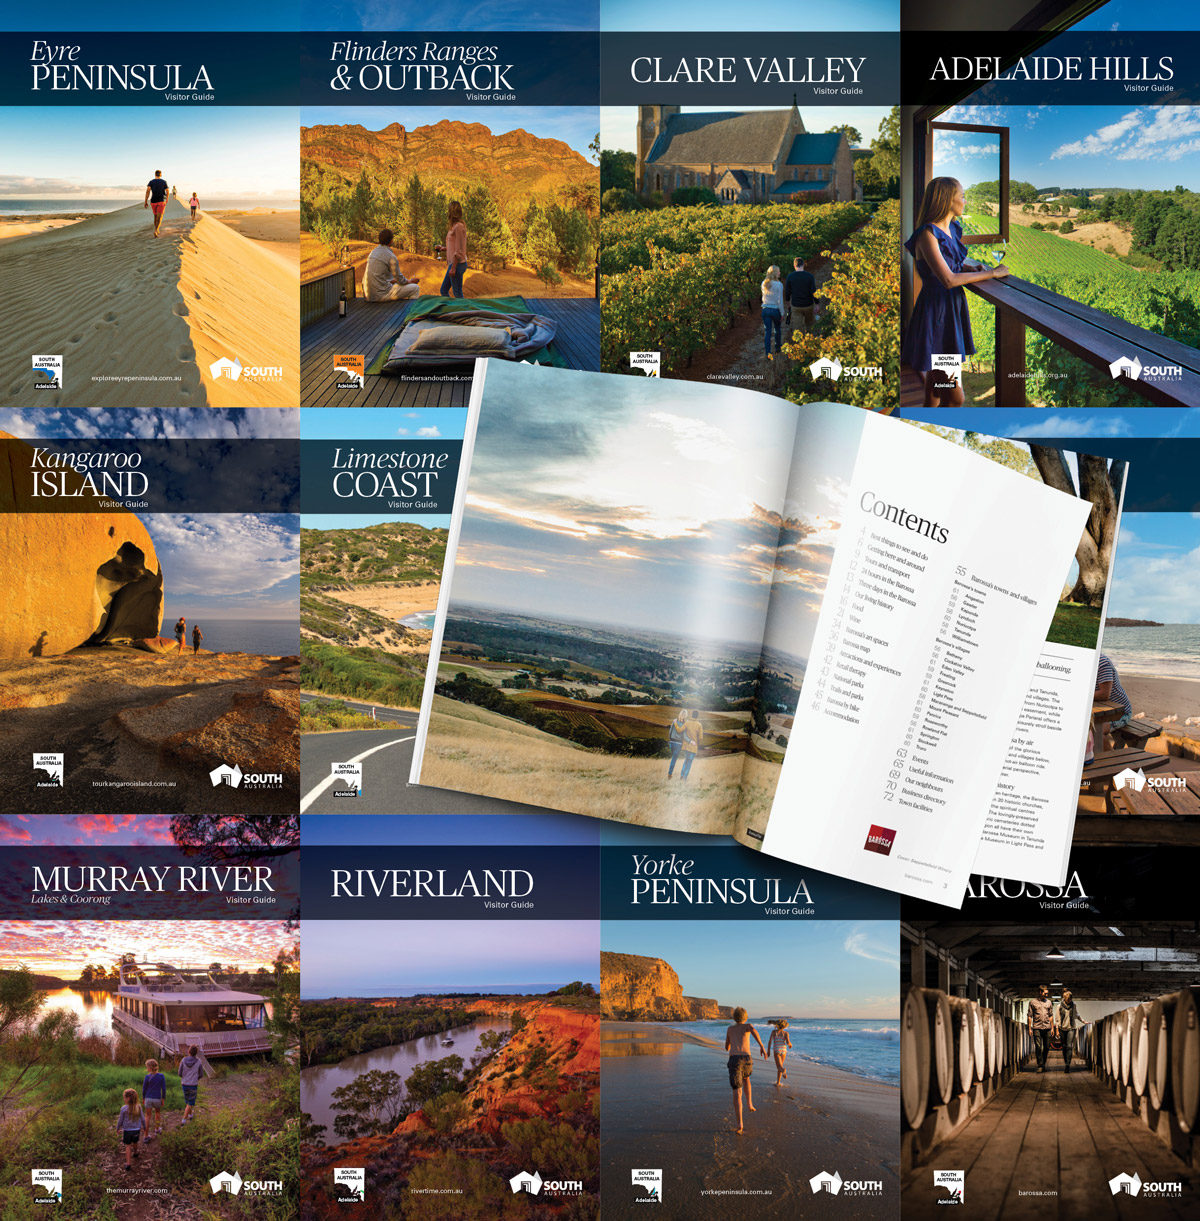 South Australian Tourism Commission Regional Visitor Guides